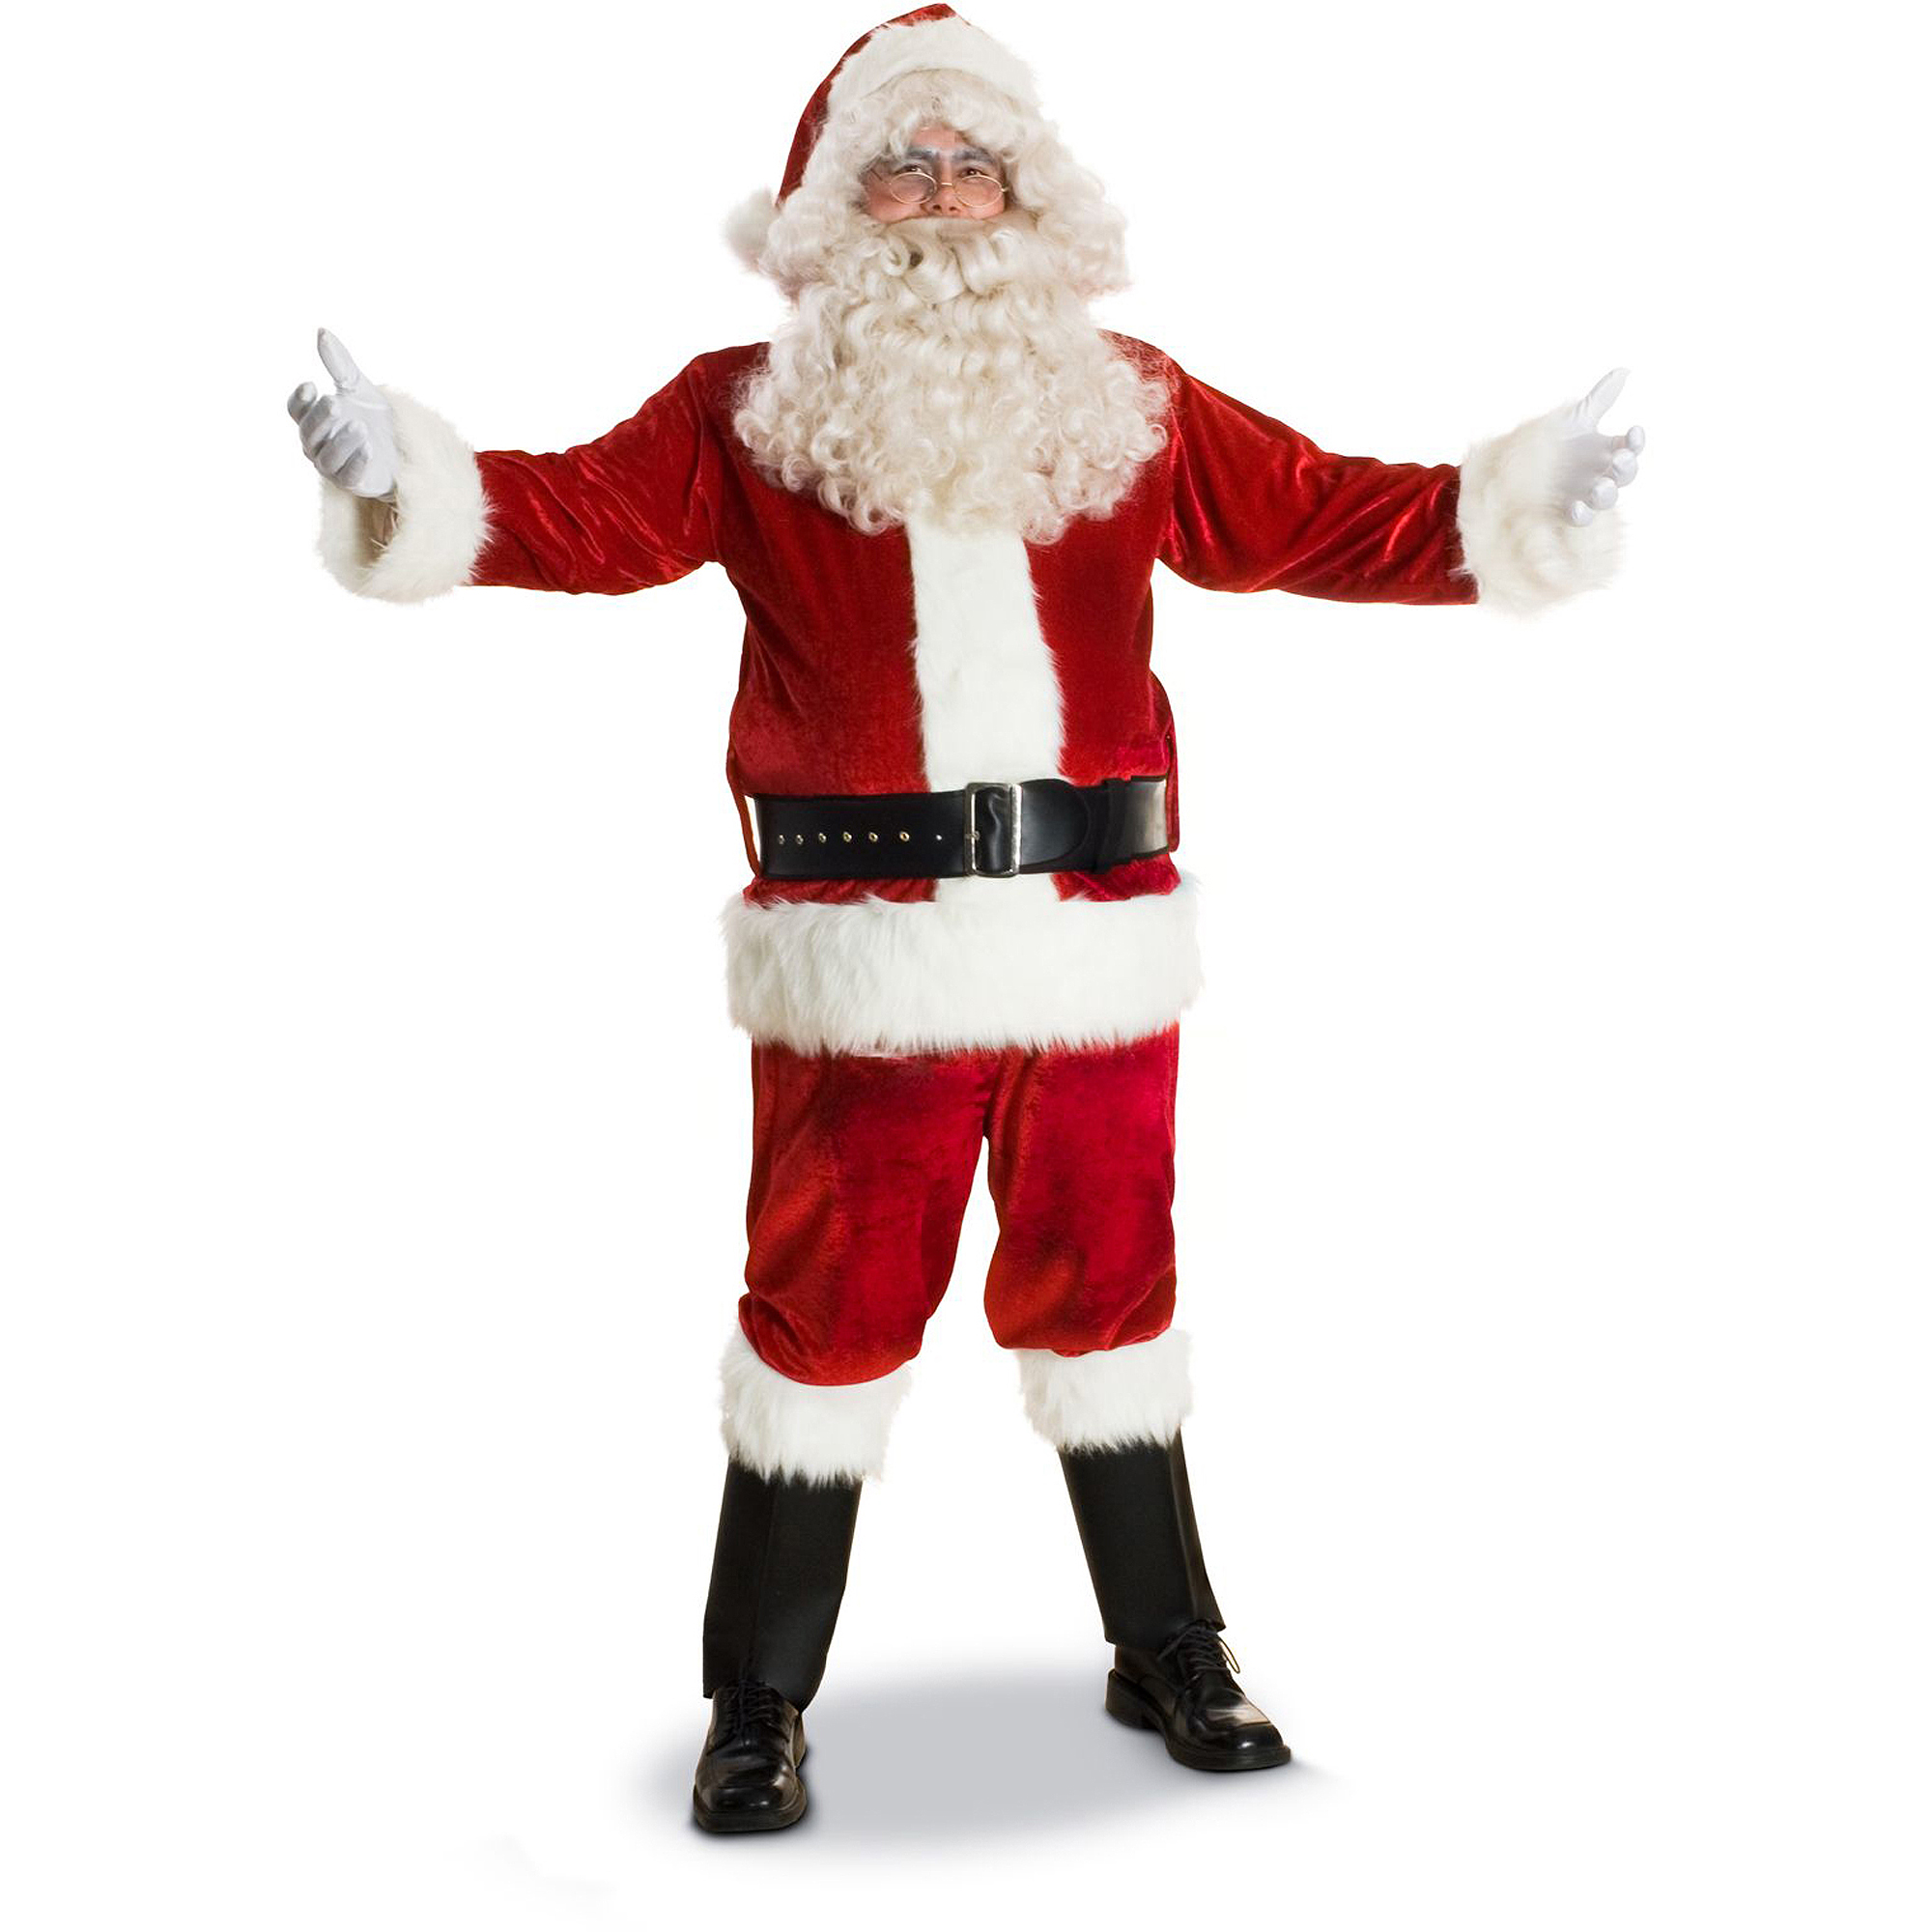 Sunnywood Deluxe Santa Claus Suit Adult Costume